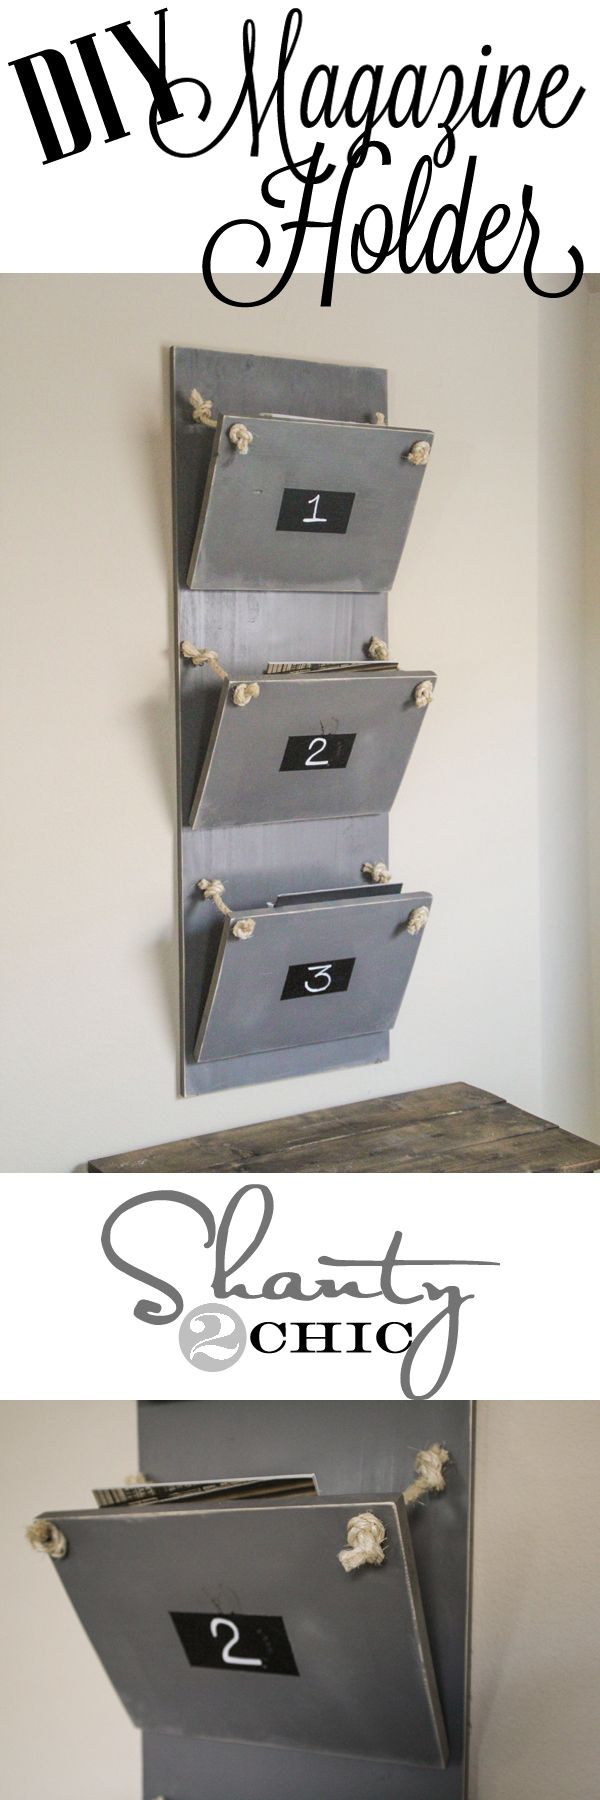 DIY Magazine Holder.  This looks so easy and cute!